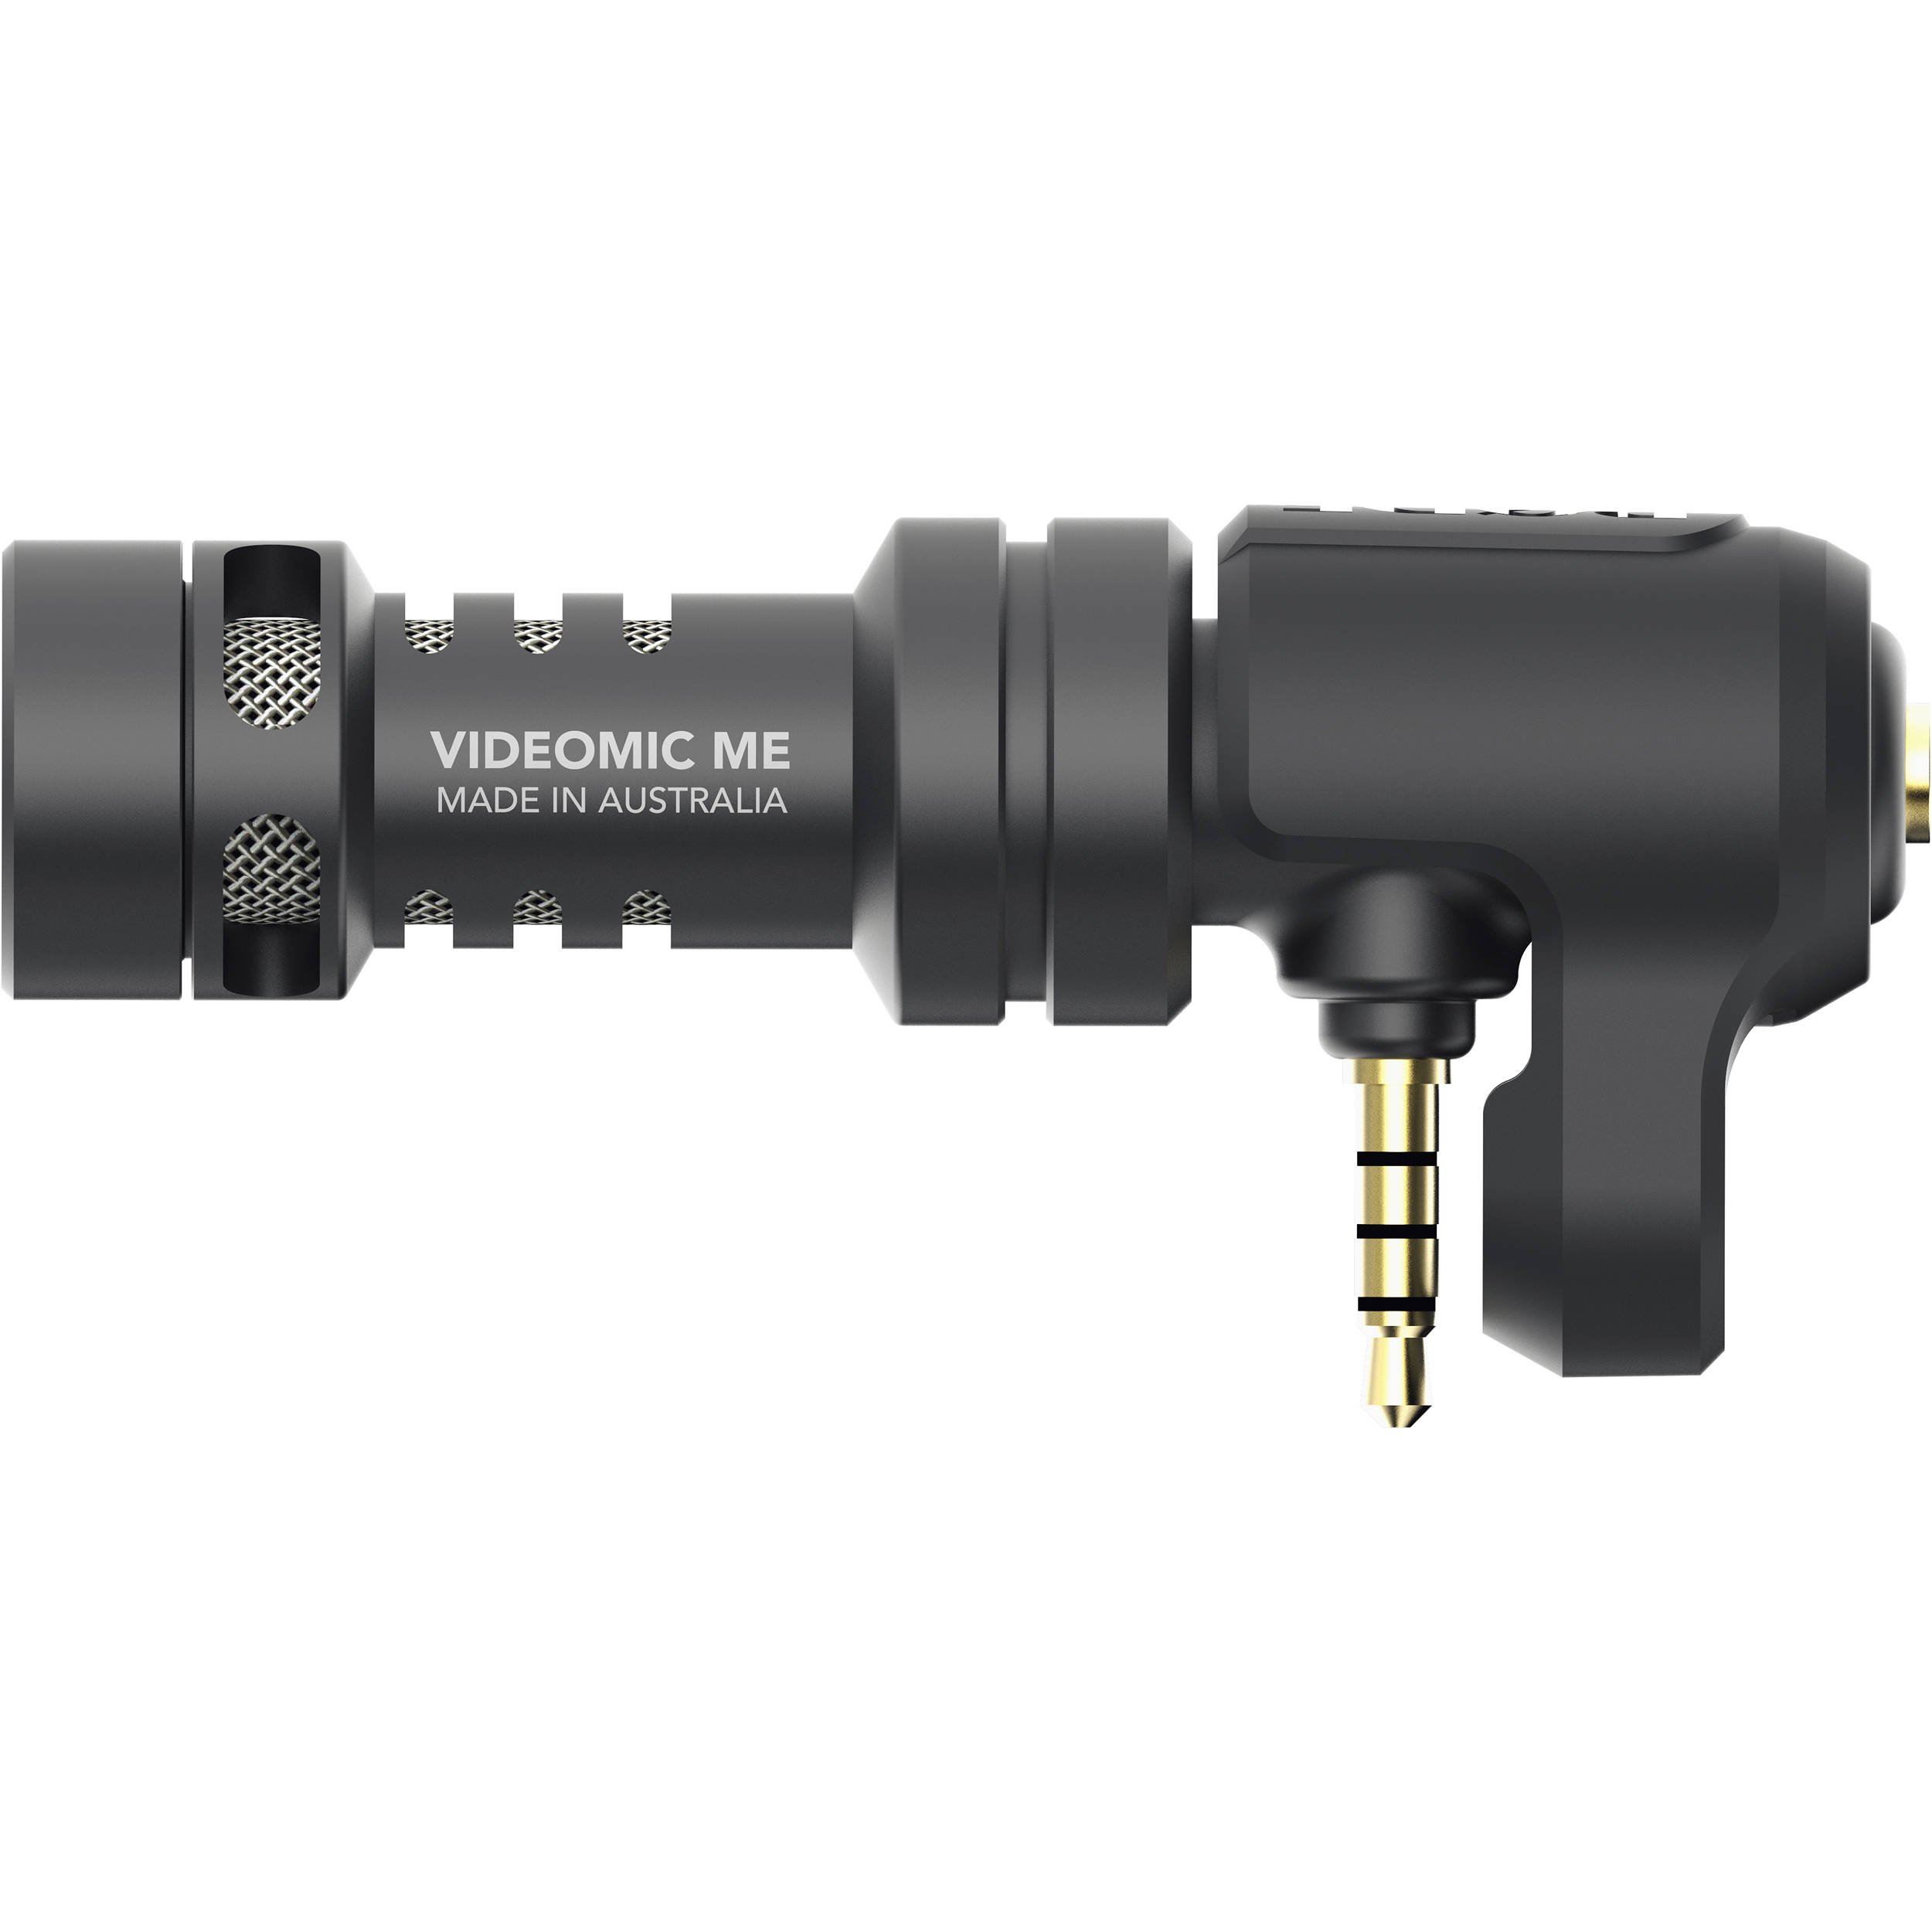 rode videomic me directional mic for smart phones videomic me rode videomic me directional mic for smart phones